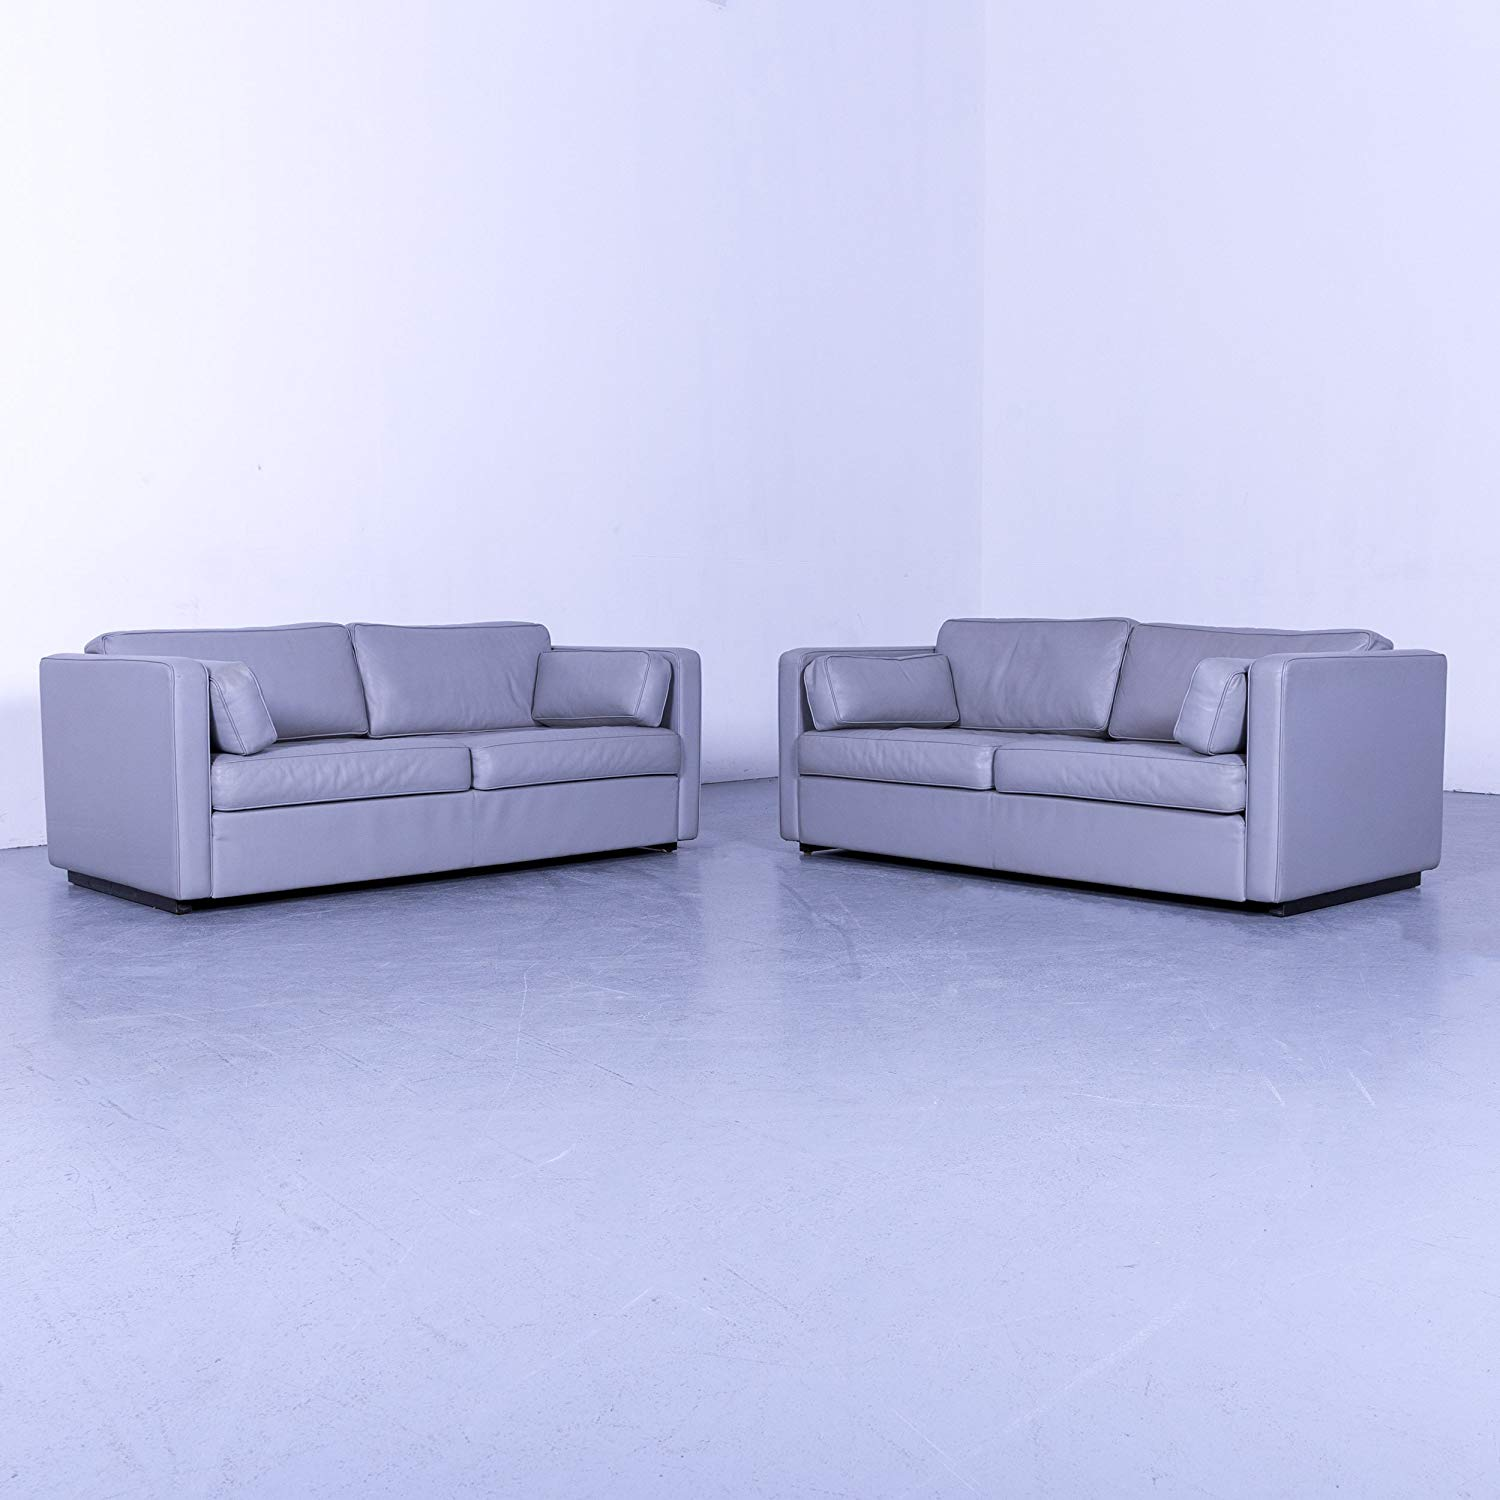 Couch Echtleder Cheap Knoll Couch Find Knoll Couch Deals On Line At Alibaba